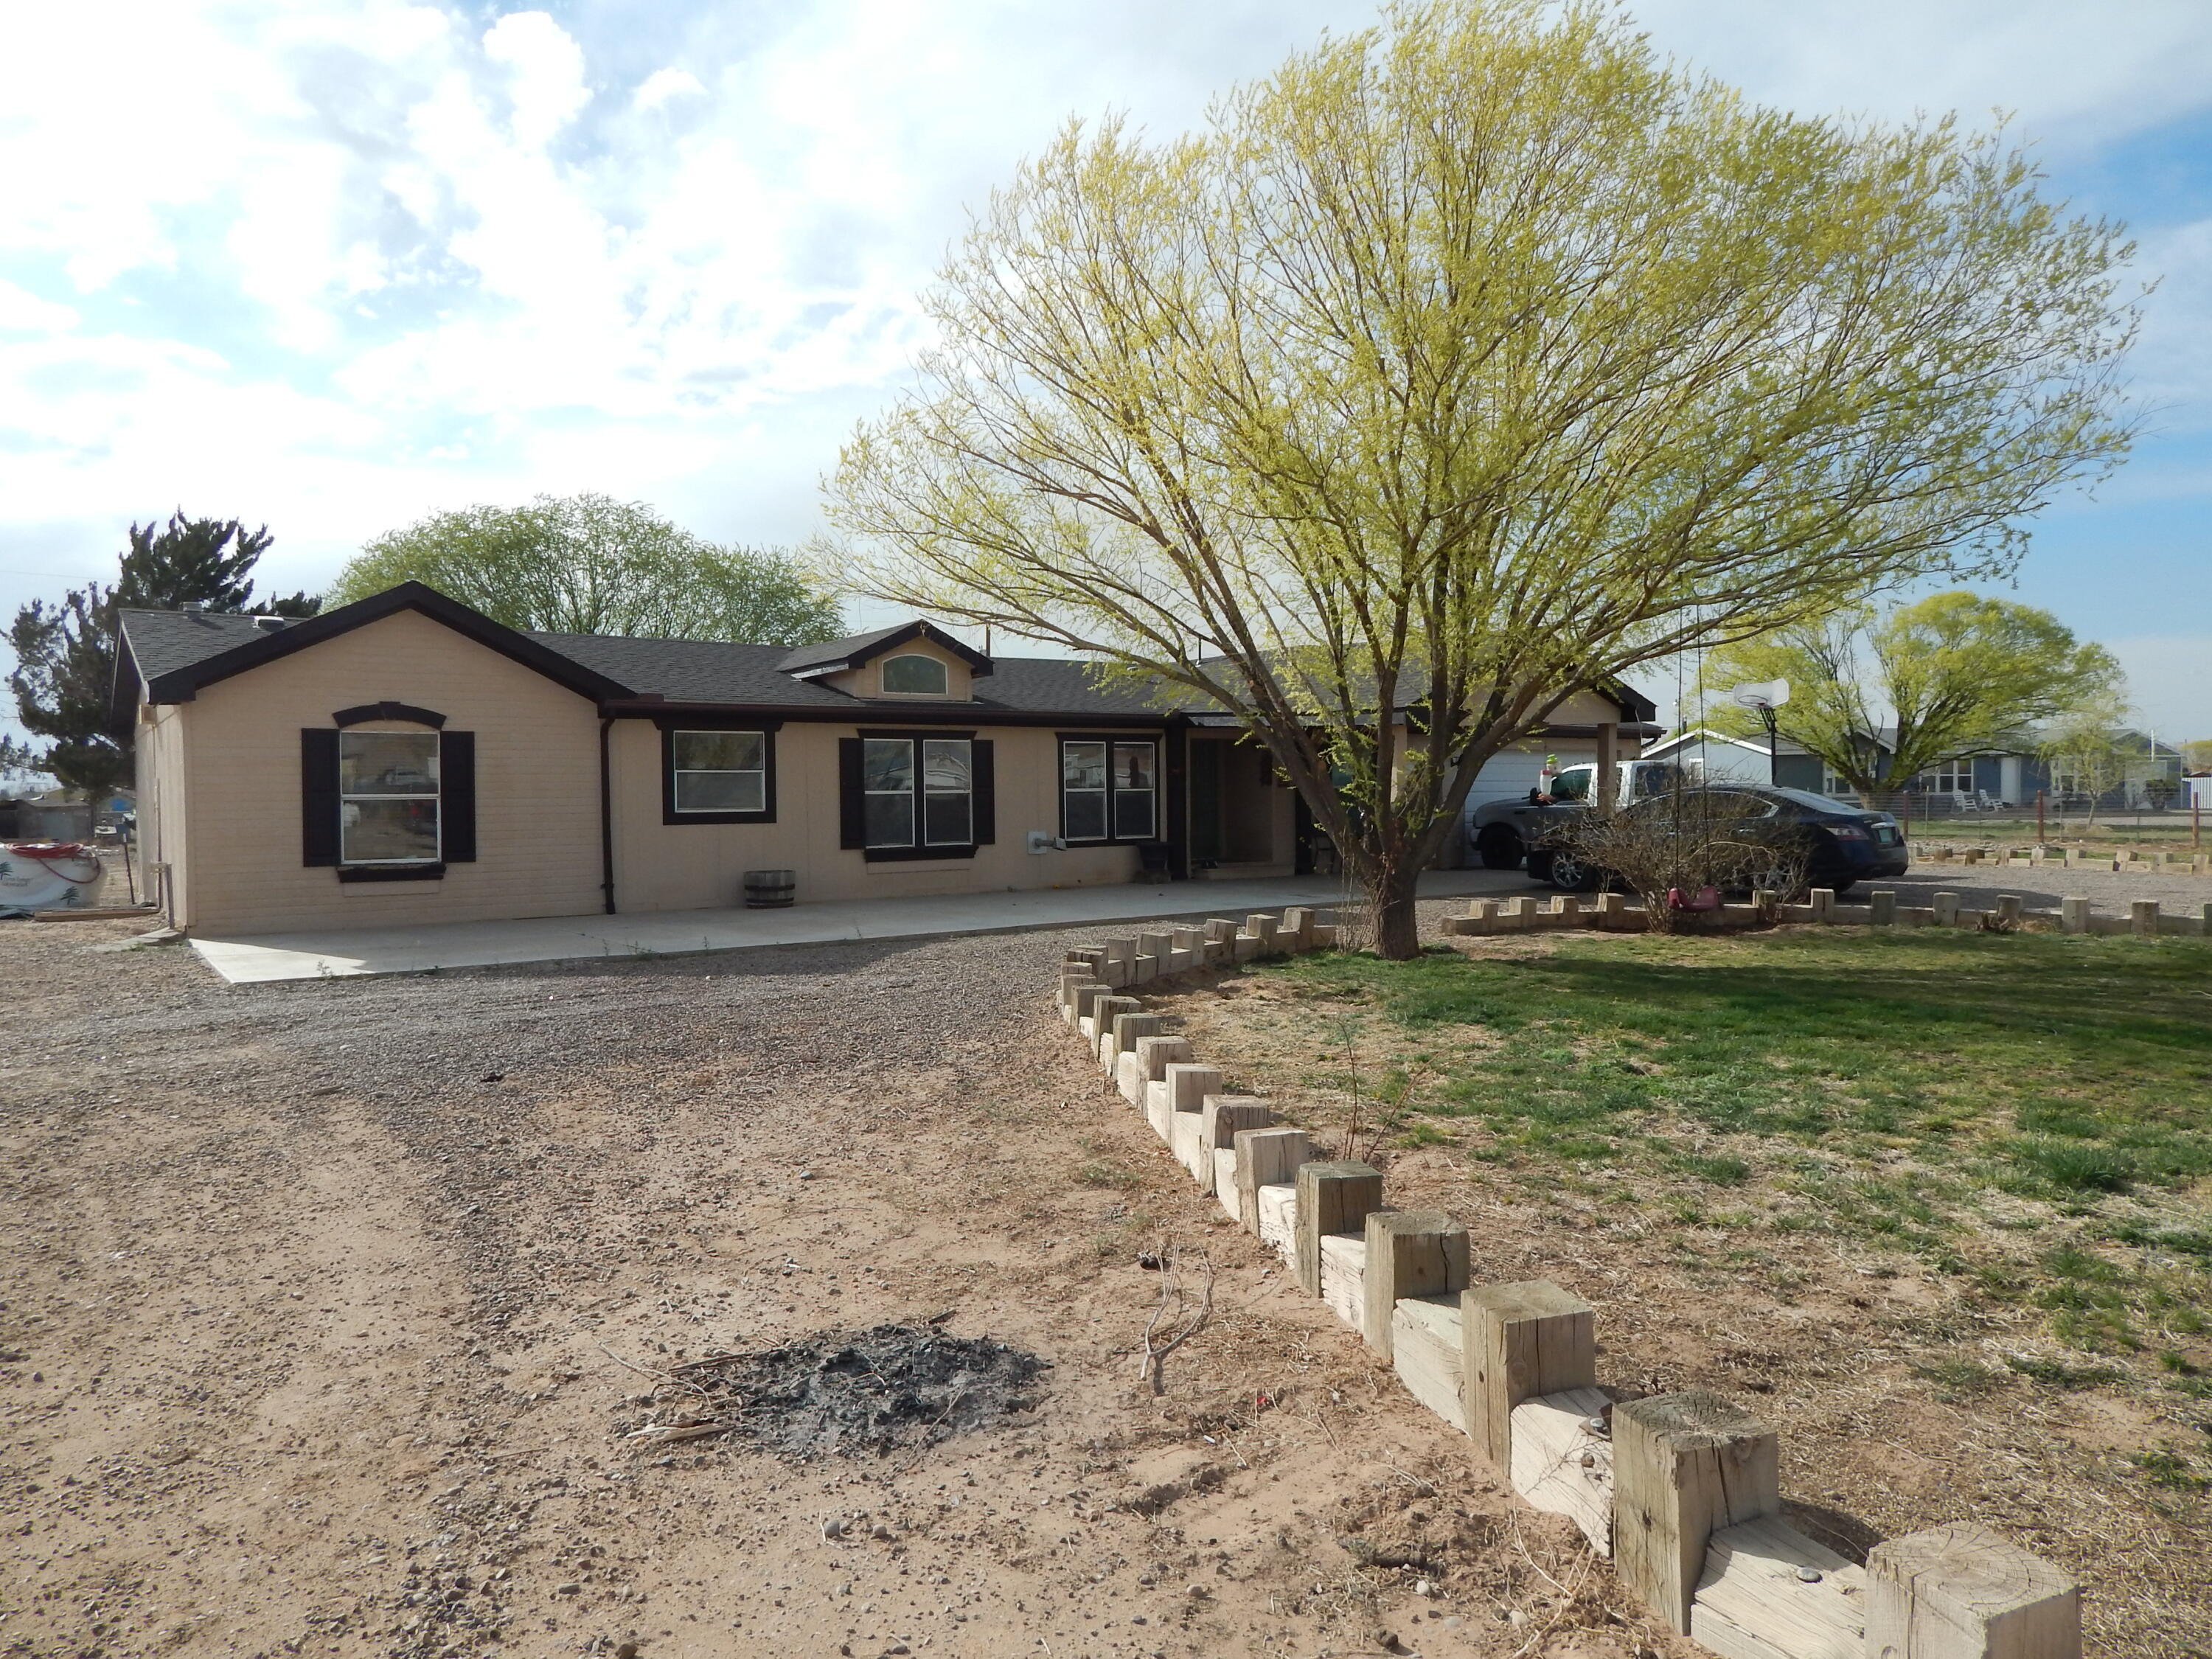 Lovely 3 bedroom, 2 bath doublewide on a completely fenced one acre lot.  Living room with cathedral ceilings & pellet stove. Spacious kitchen and family dining area. Split floorplan. New roof in 2018.  2-car attached garage. Mature trees with grass, covered front patio and mountain views!